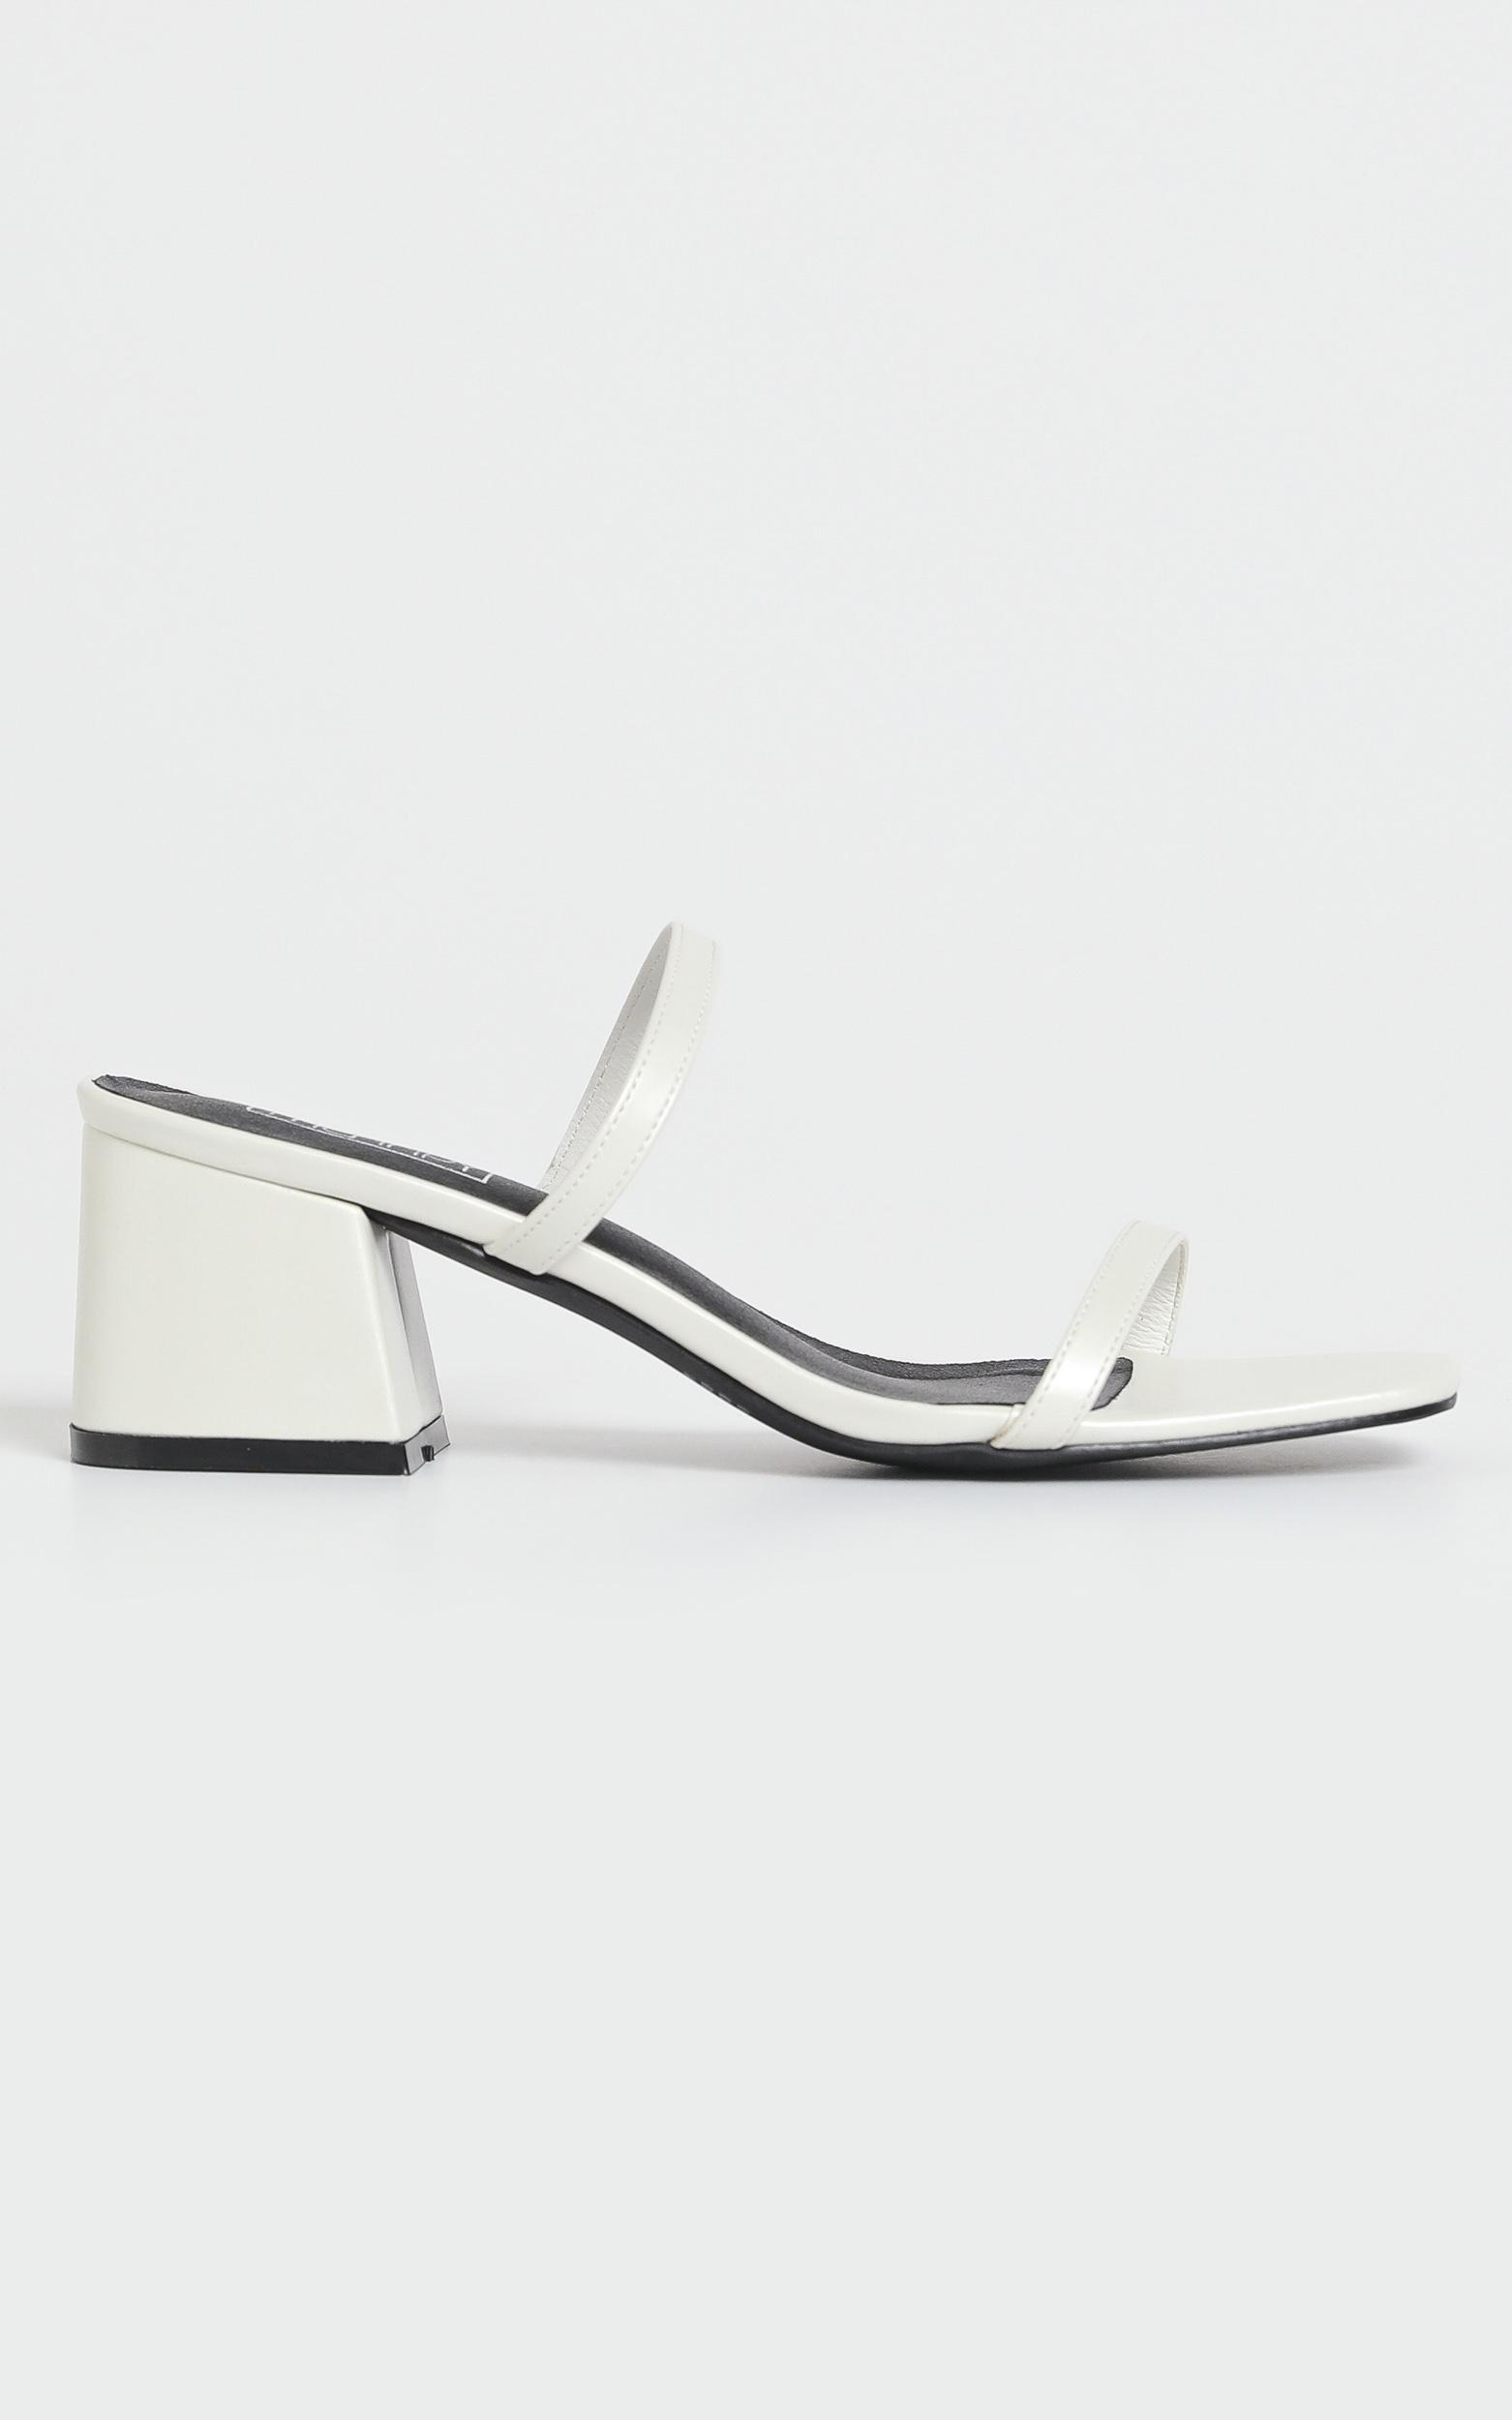 Therapy - Goldie Heels in White - 10, WHT1, hi-res image number null